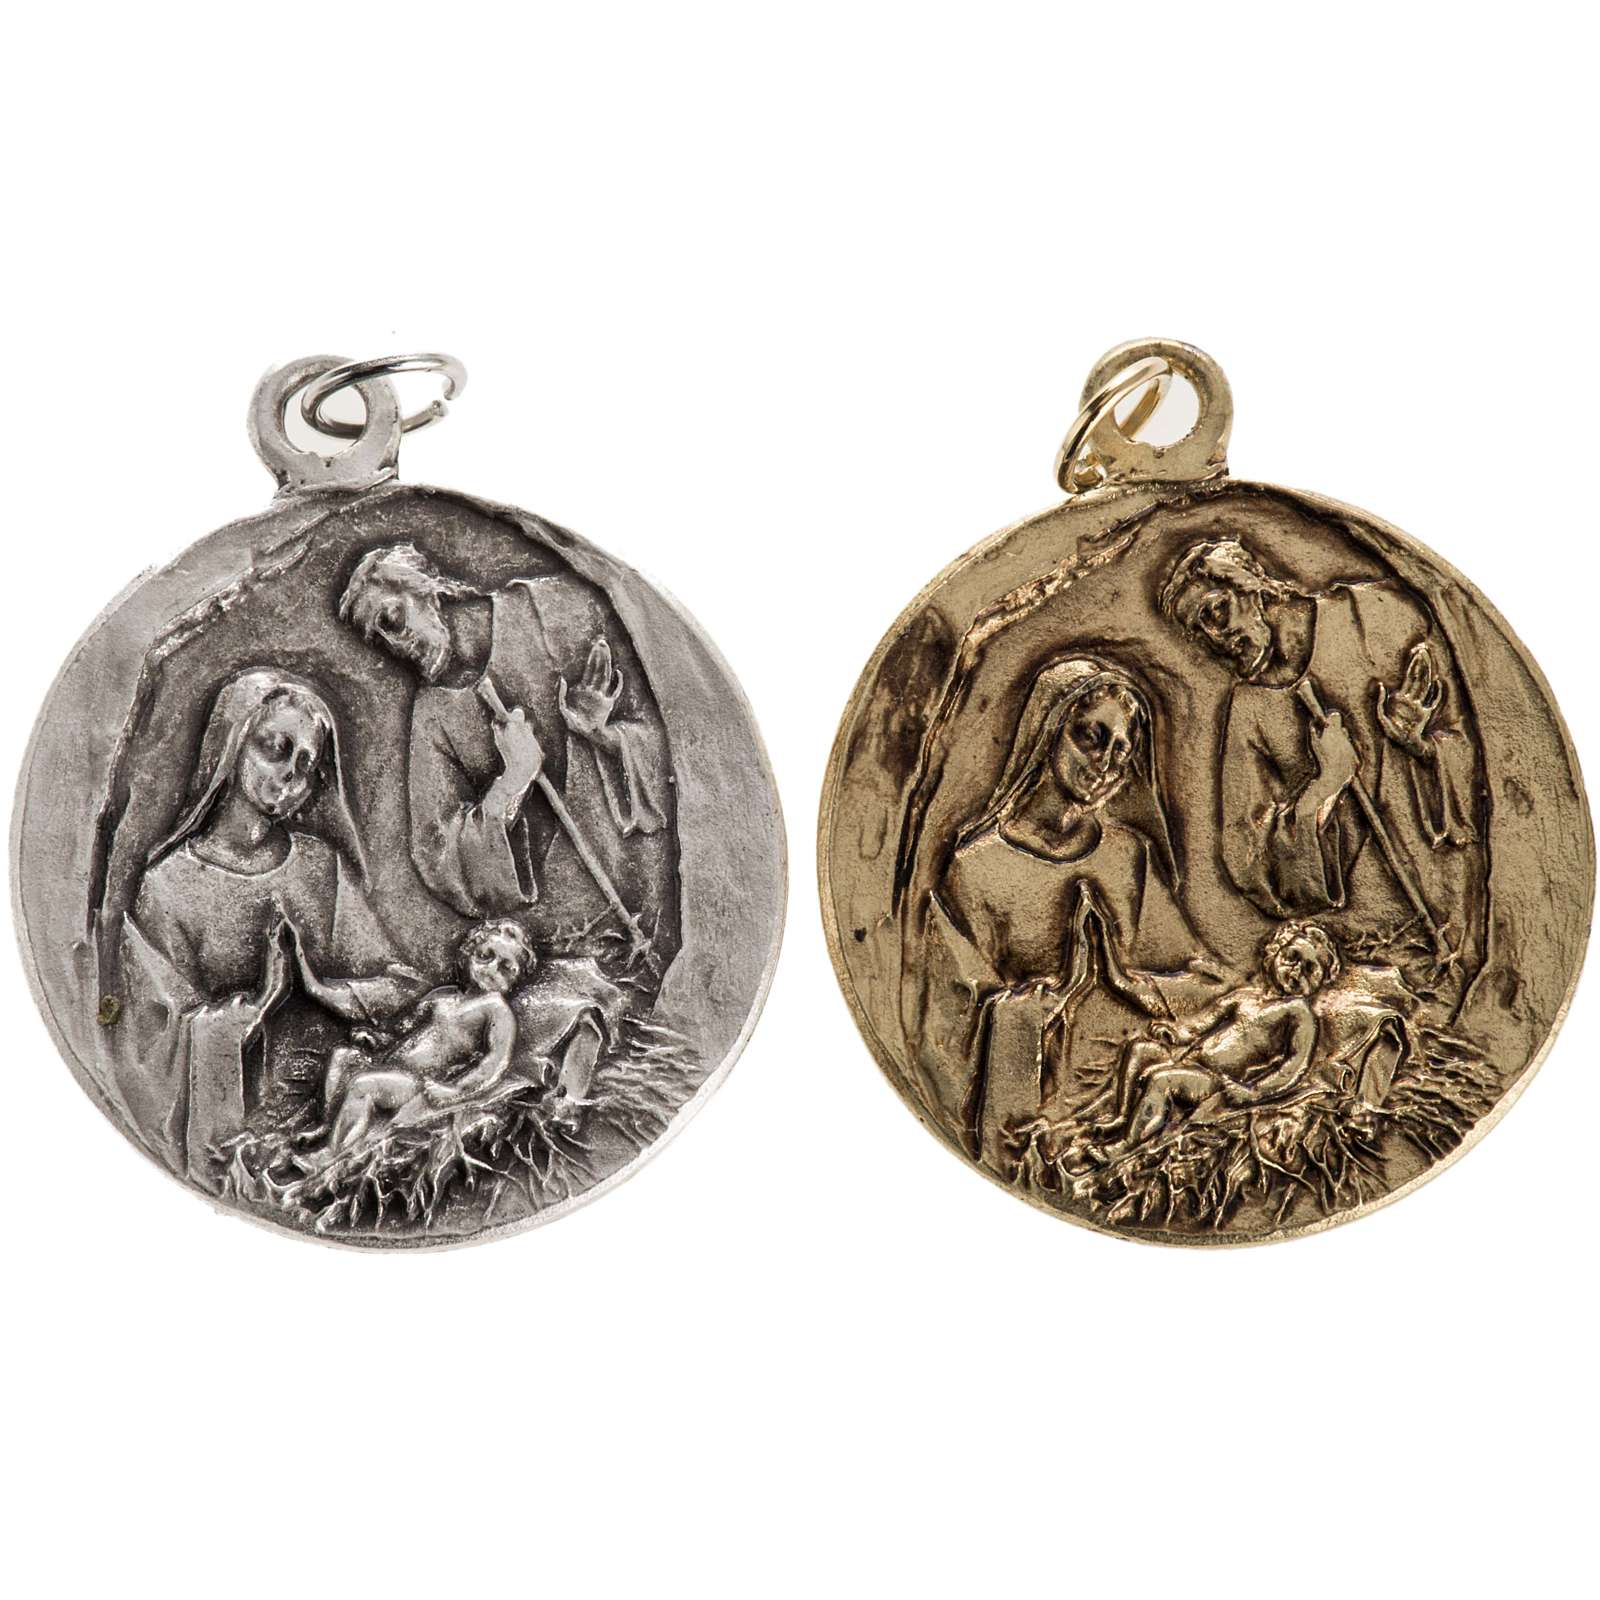 Nativity medal in zamak 4